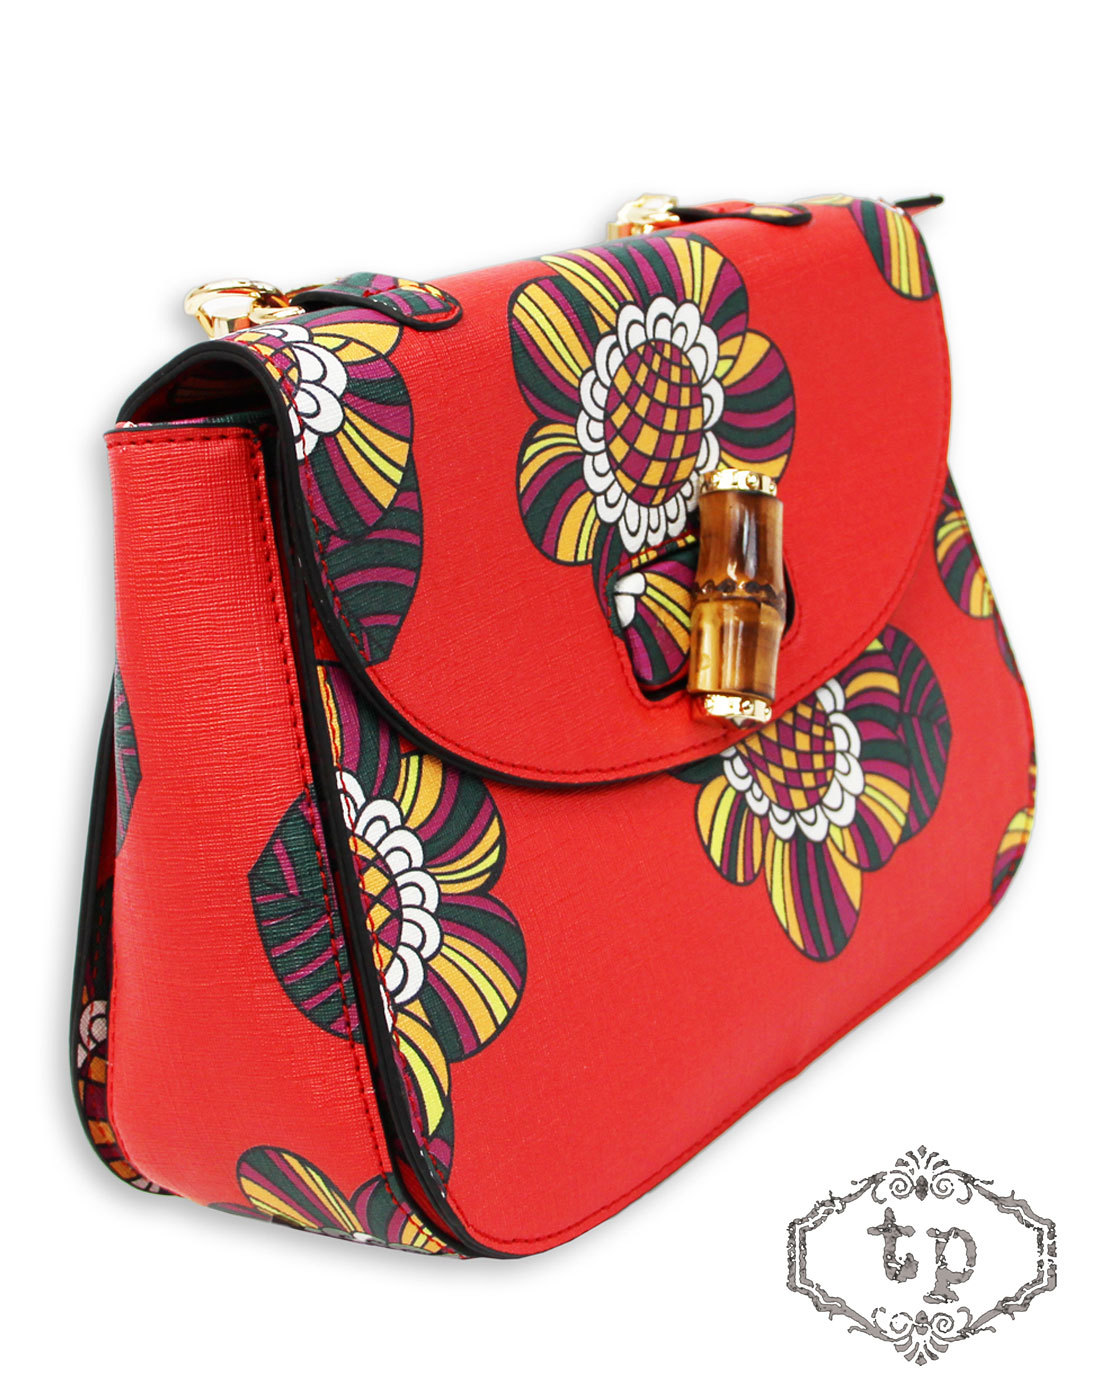 TRAFFIC PEOPLE Retro 60s Flower Saddle Bag RED